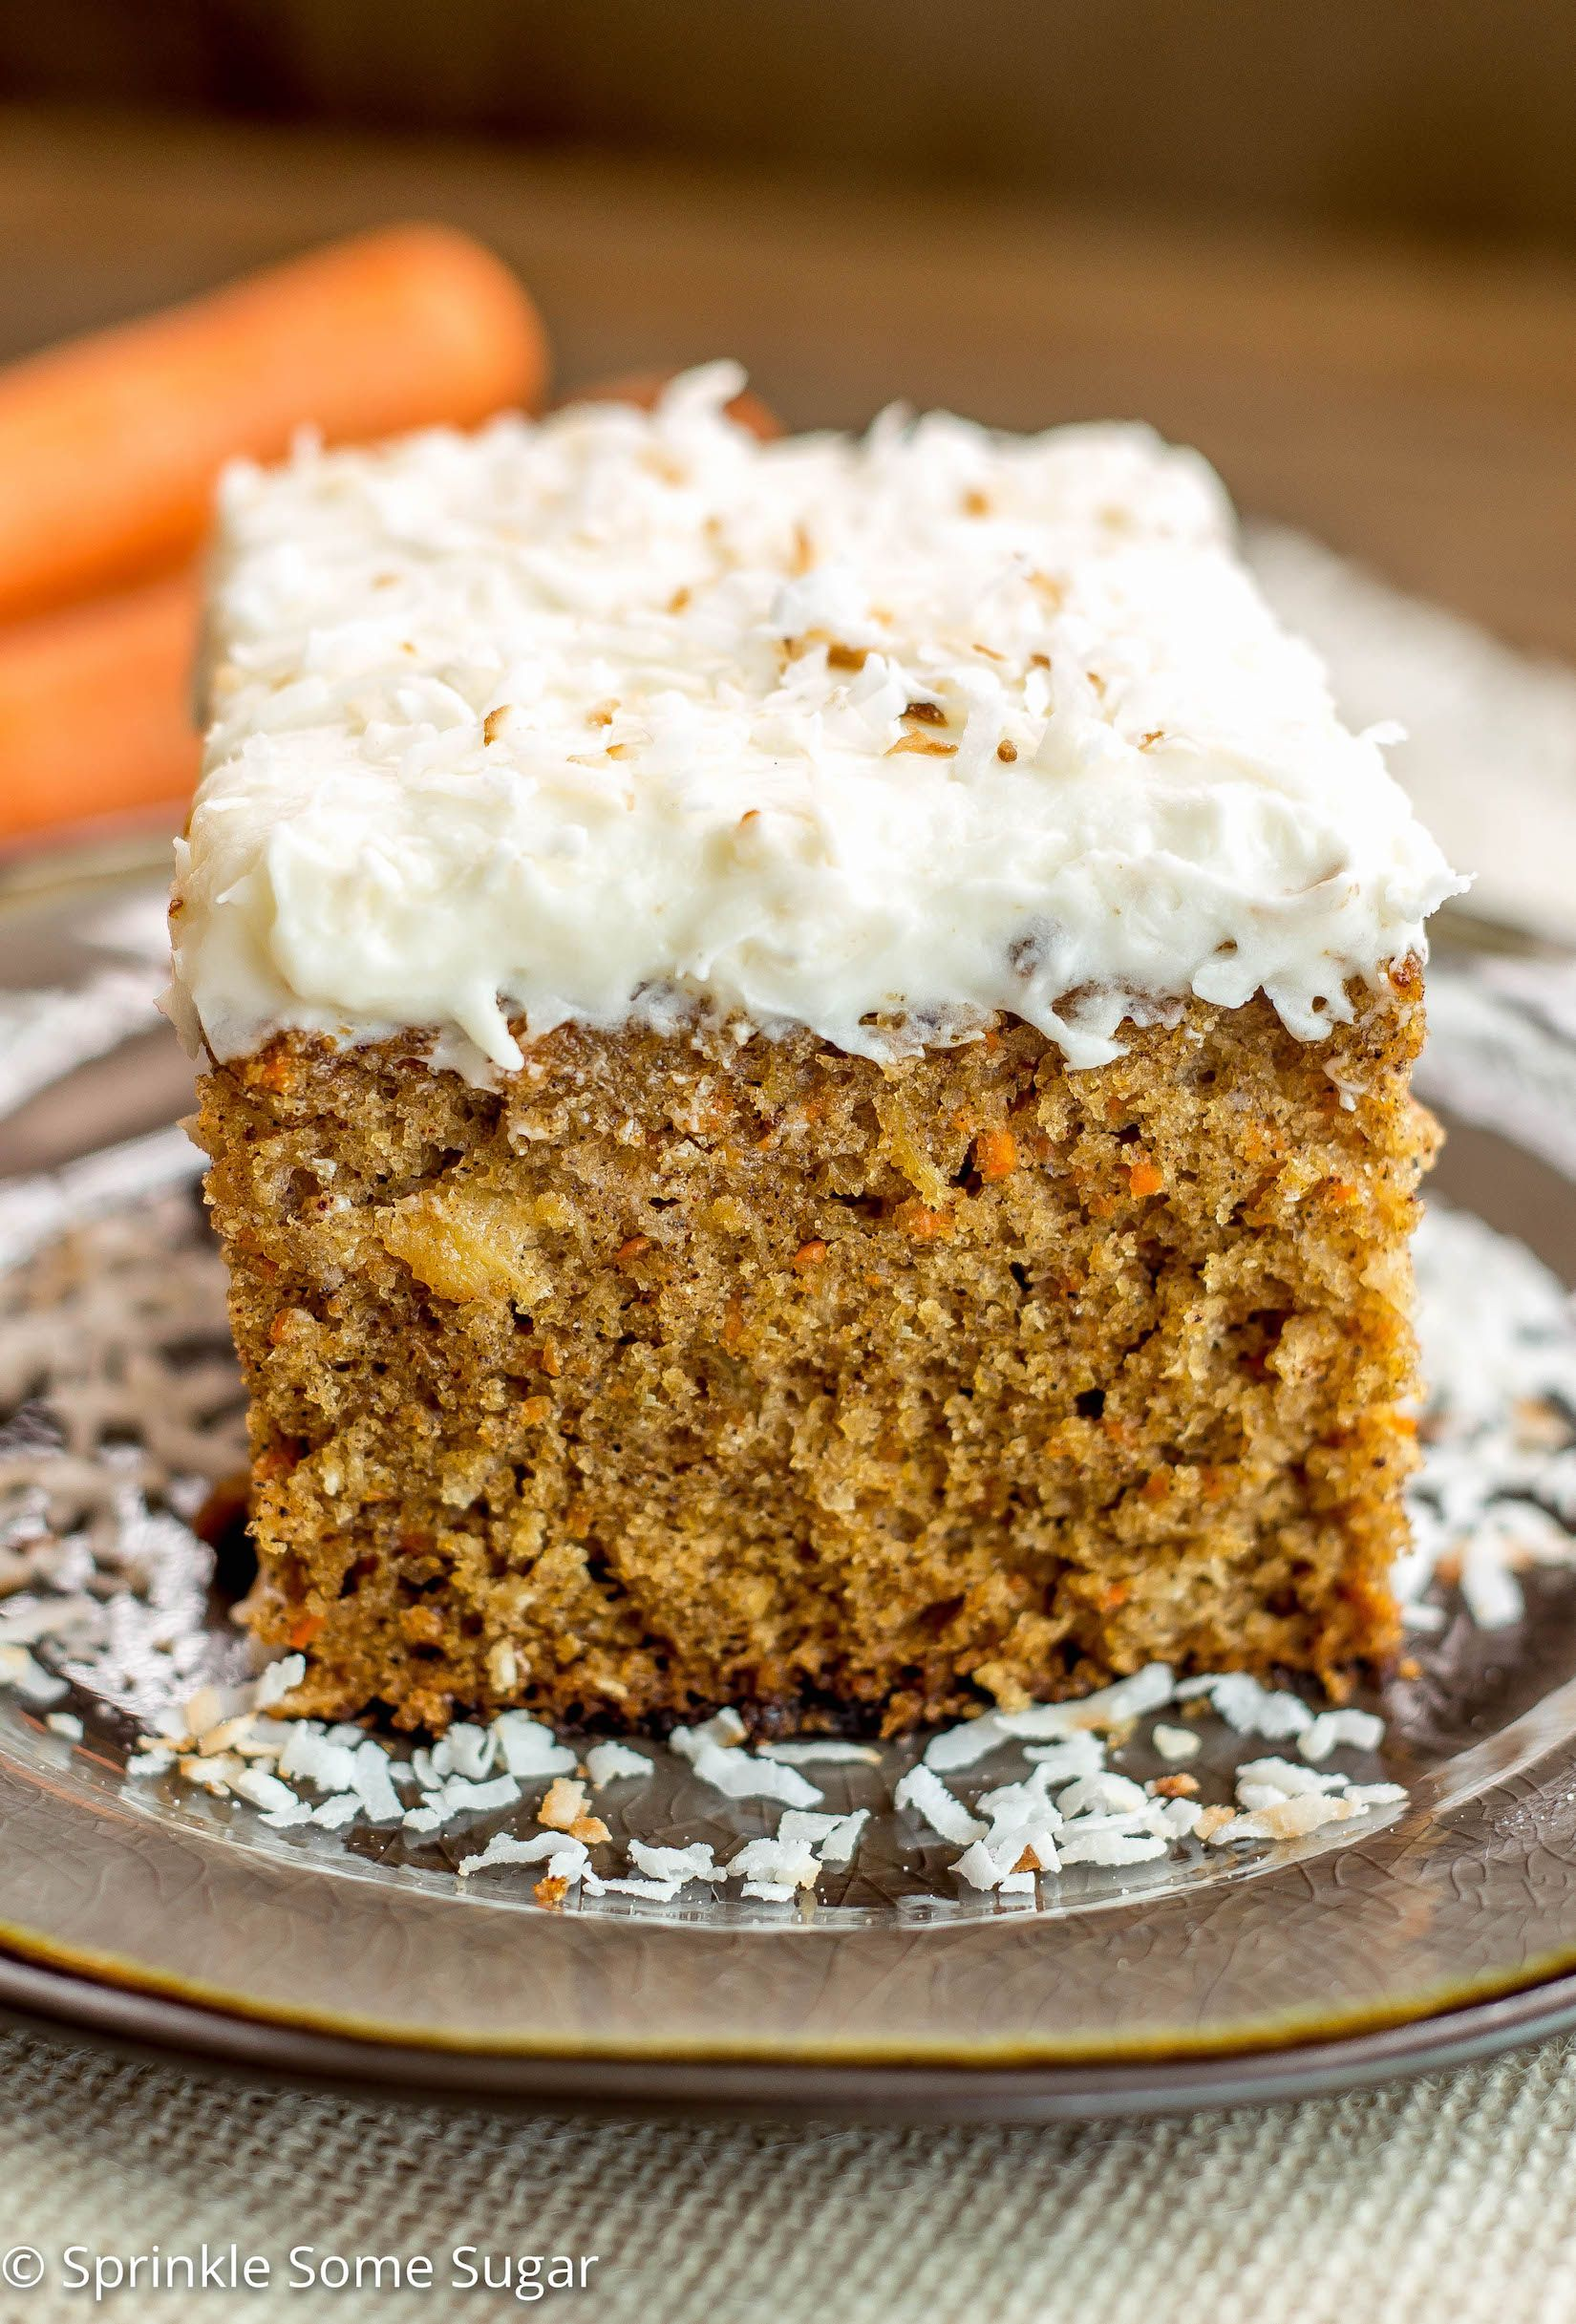 Pineapple Coconut Carrot Cake With Coconut Cream Cheese Frosting Sprinkle Some Sugar Recipe Whole Wheat Carrot Cake Carrot Cake Recipe Coconut Cream Cheese Frosting